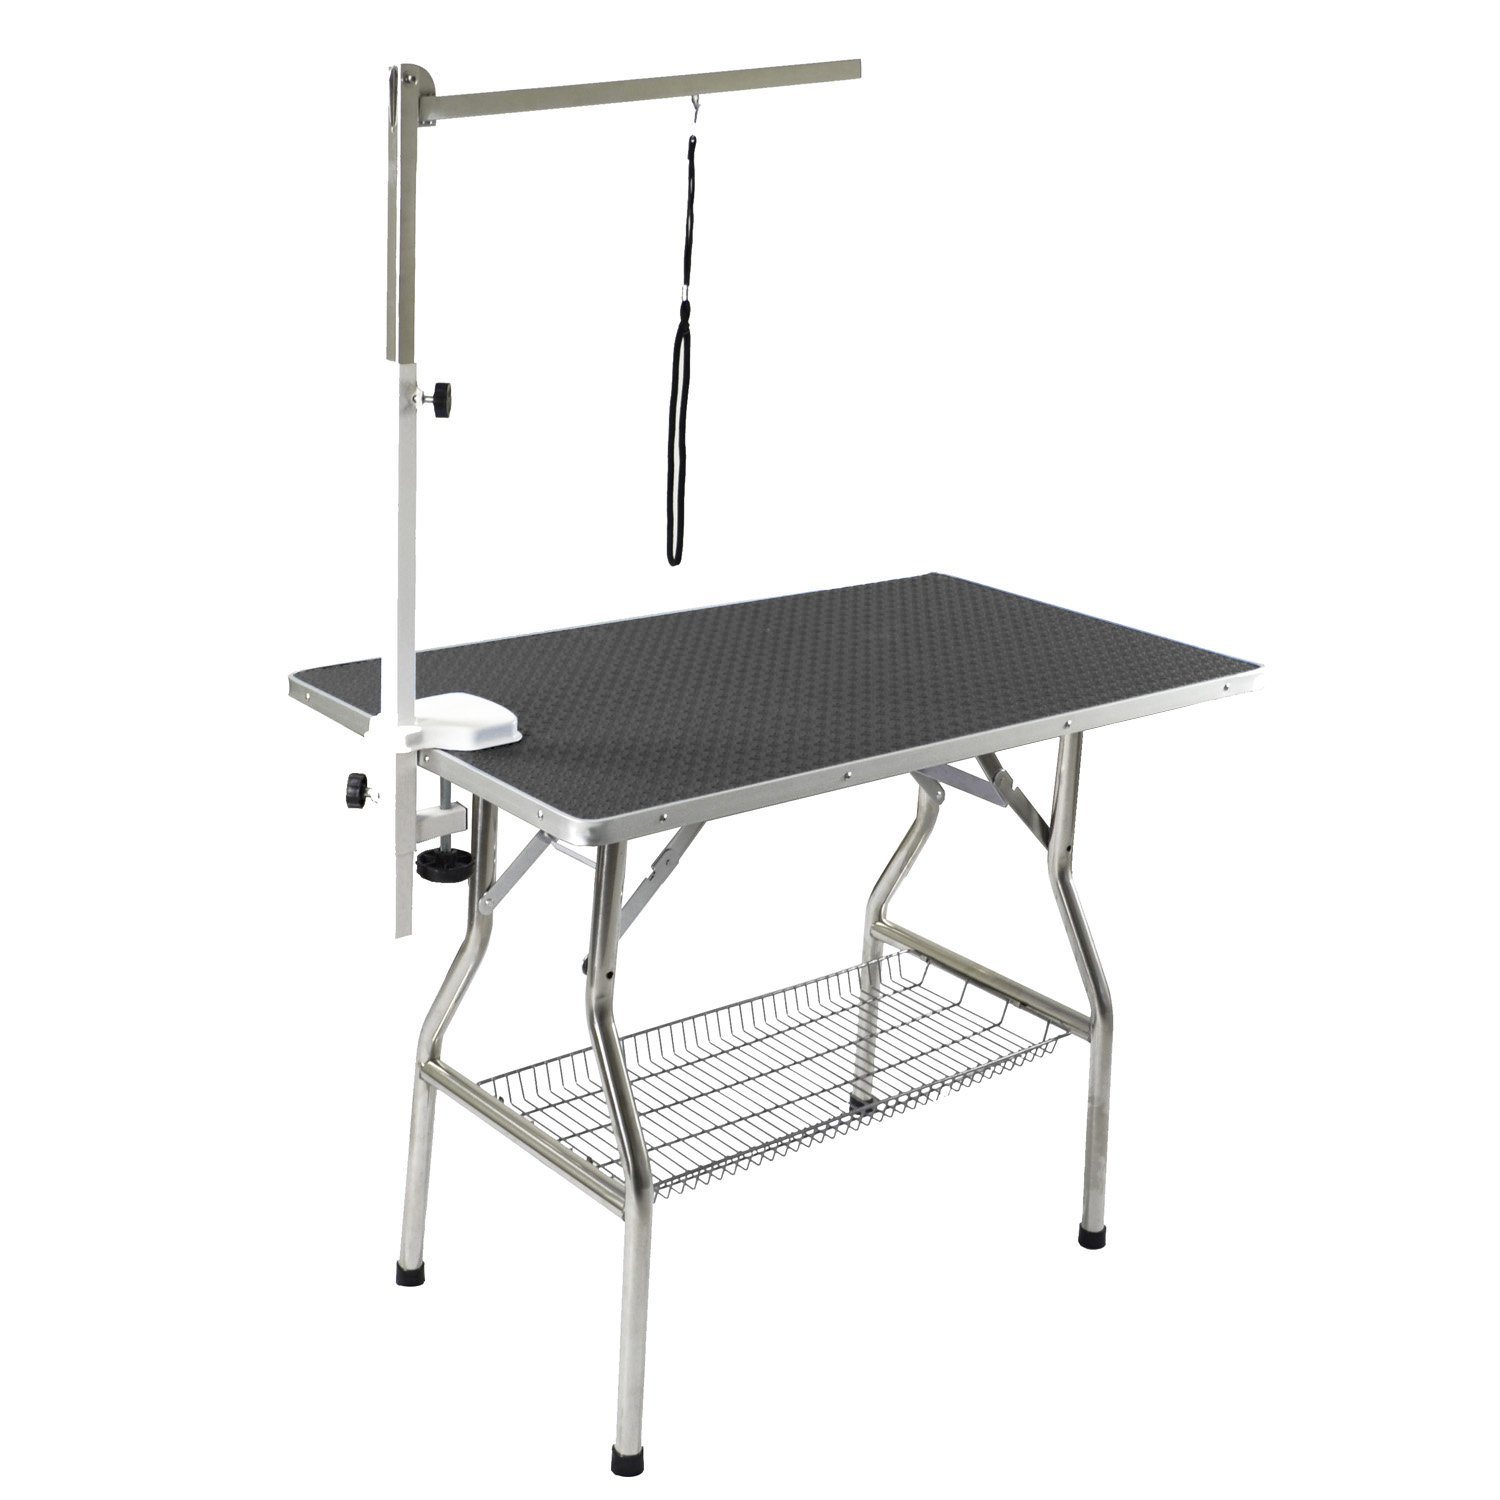 Flying Pig Grooming Small Stainless Steel Frame Foldable Dog Pet Table, 32'' by 21'', Black